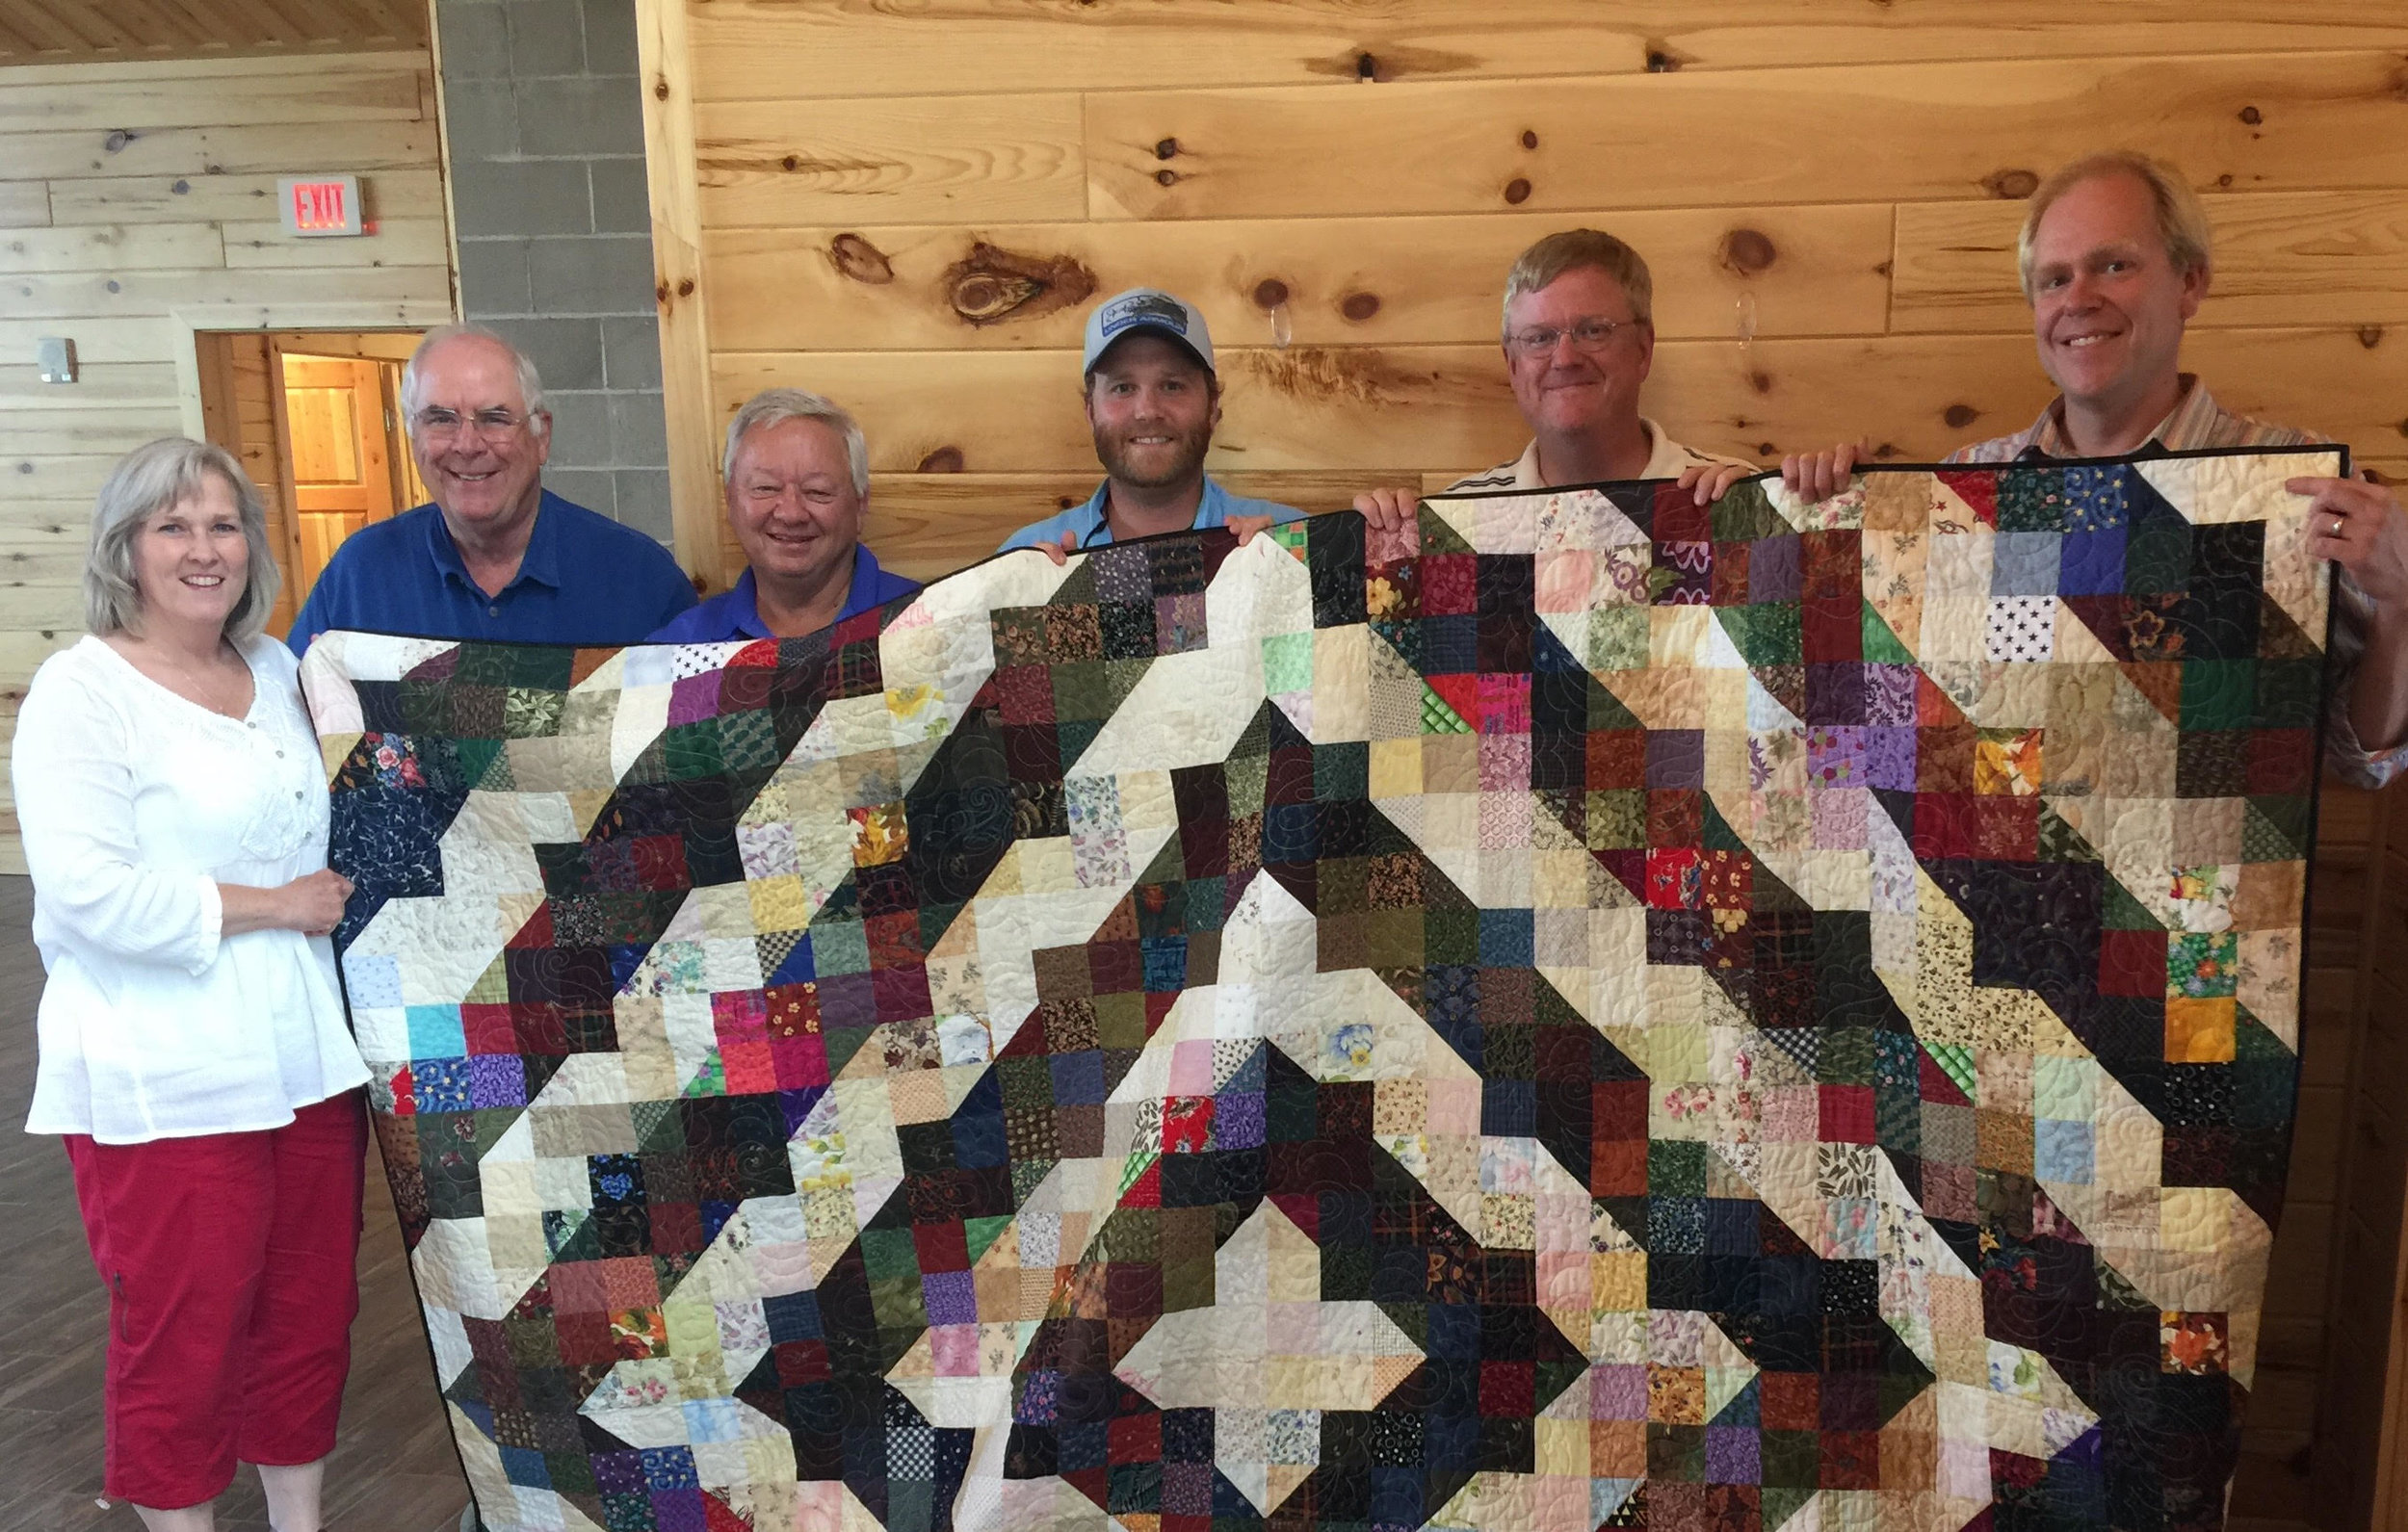 """VLM received this wonderful quilt from the """"Going to Pieces Quilting Group"""".    Pictured here are VLM board members Sheila Davidson (Virginia), Tom Whittaker (Duluth), Keith Eggert (Hibbing), Mike Olson (Grand Rapids), Joel Abenth (VLM Executive Director), and Andy Mork (St Paul)."""